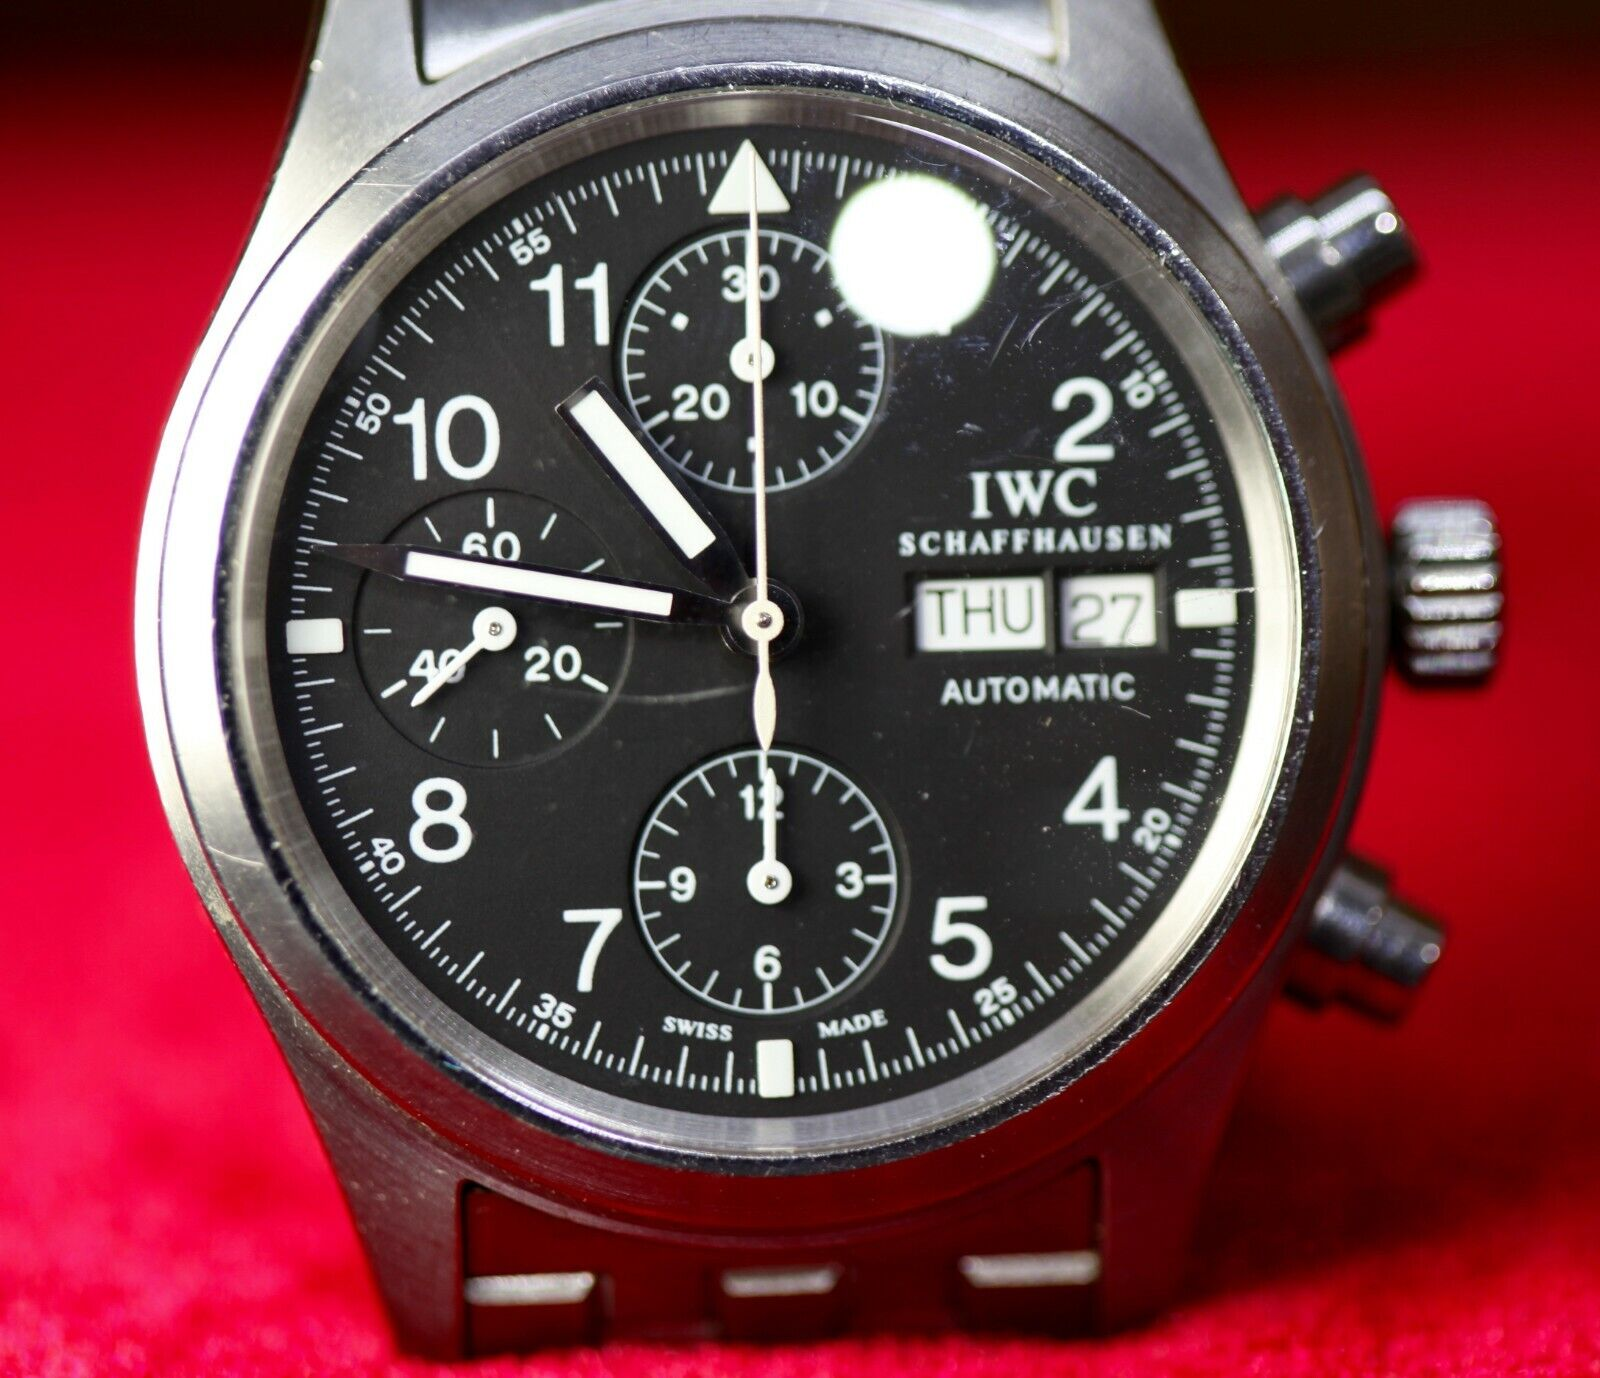 "Men's 40 MM IWC Chronograph Stainless Steel Pilot's Watch #2899052 ""Serviced"" - watch picture 1"